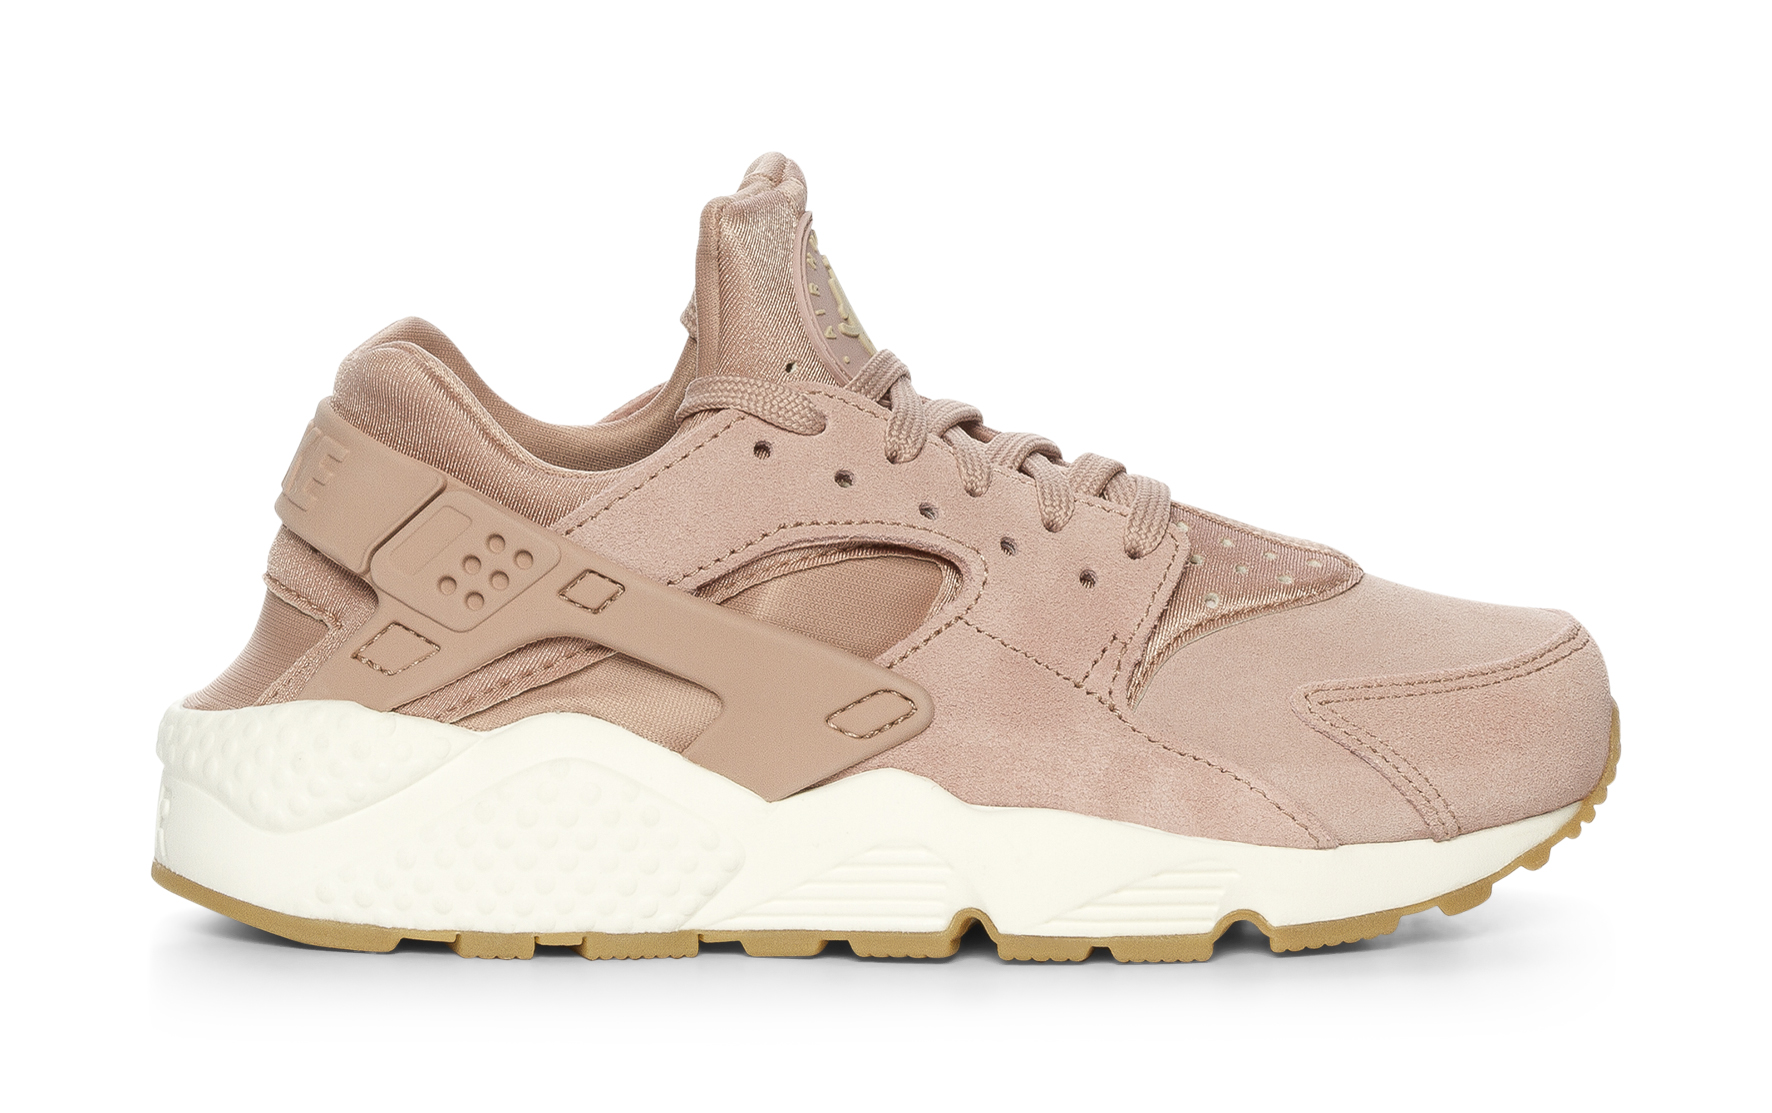 cheap for discount f52b6 53337 Nike Air Huarache Run Sd - Rosa 314044 feetfirst.se